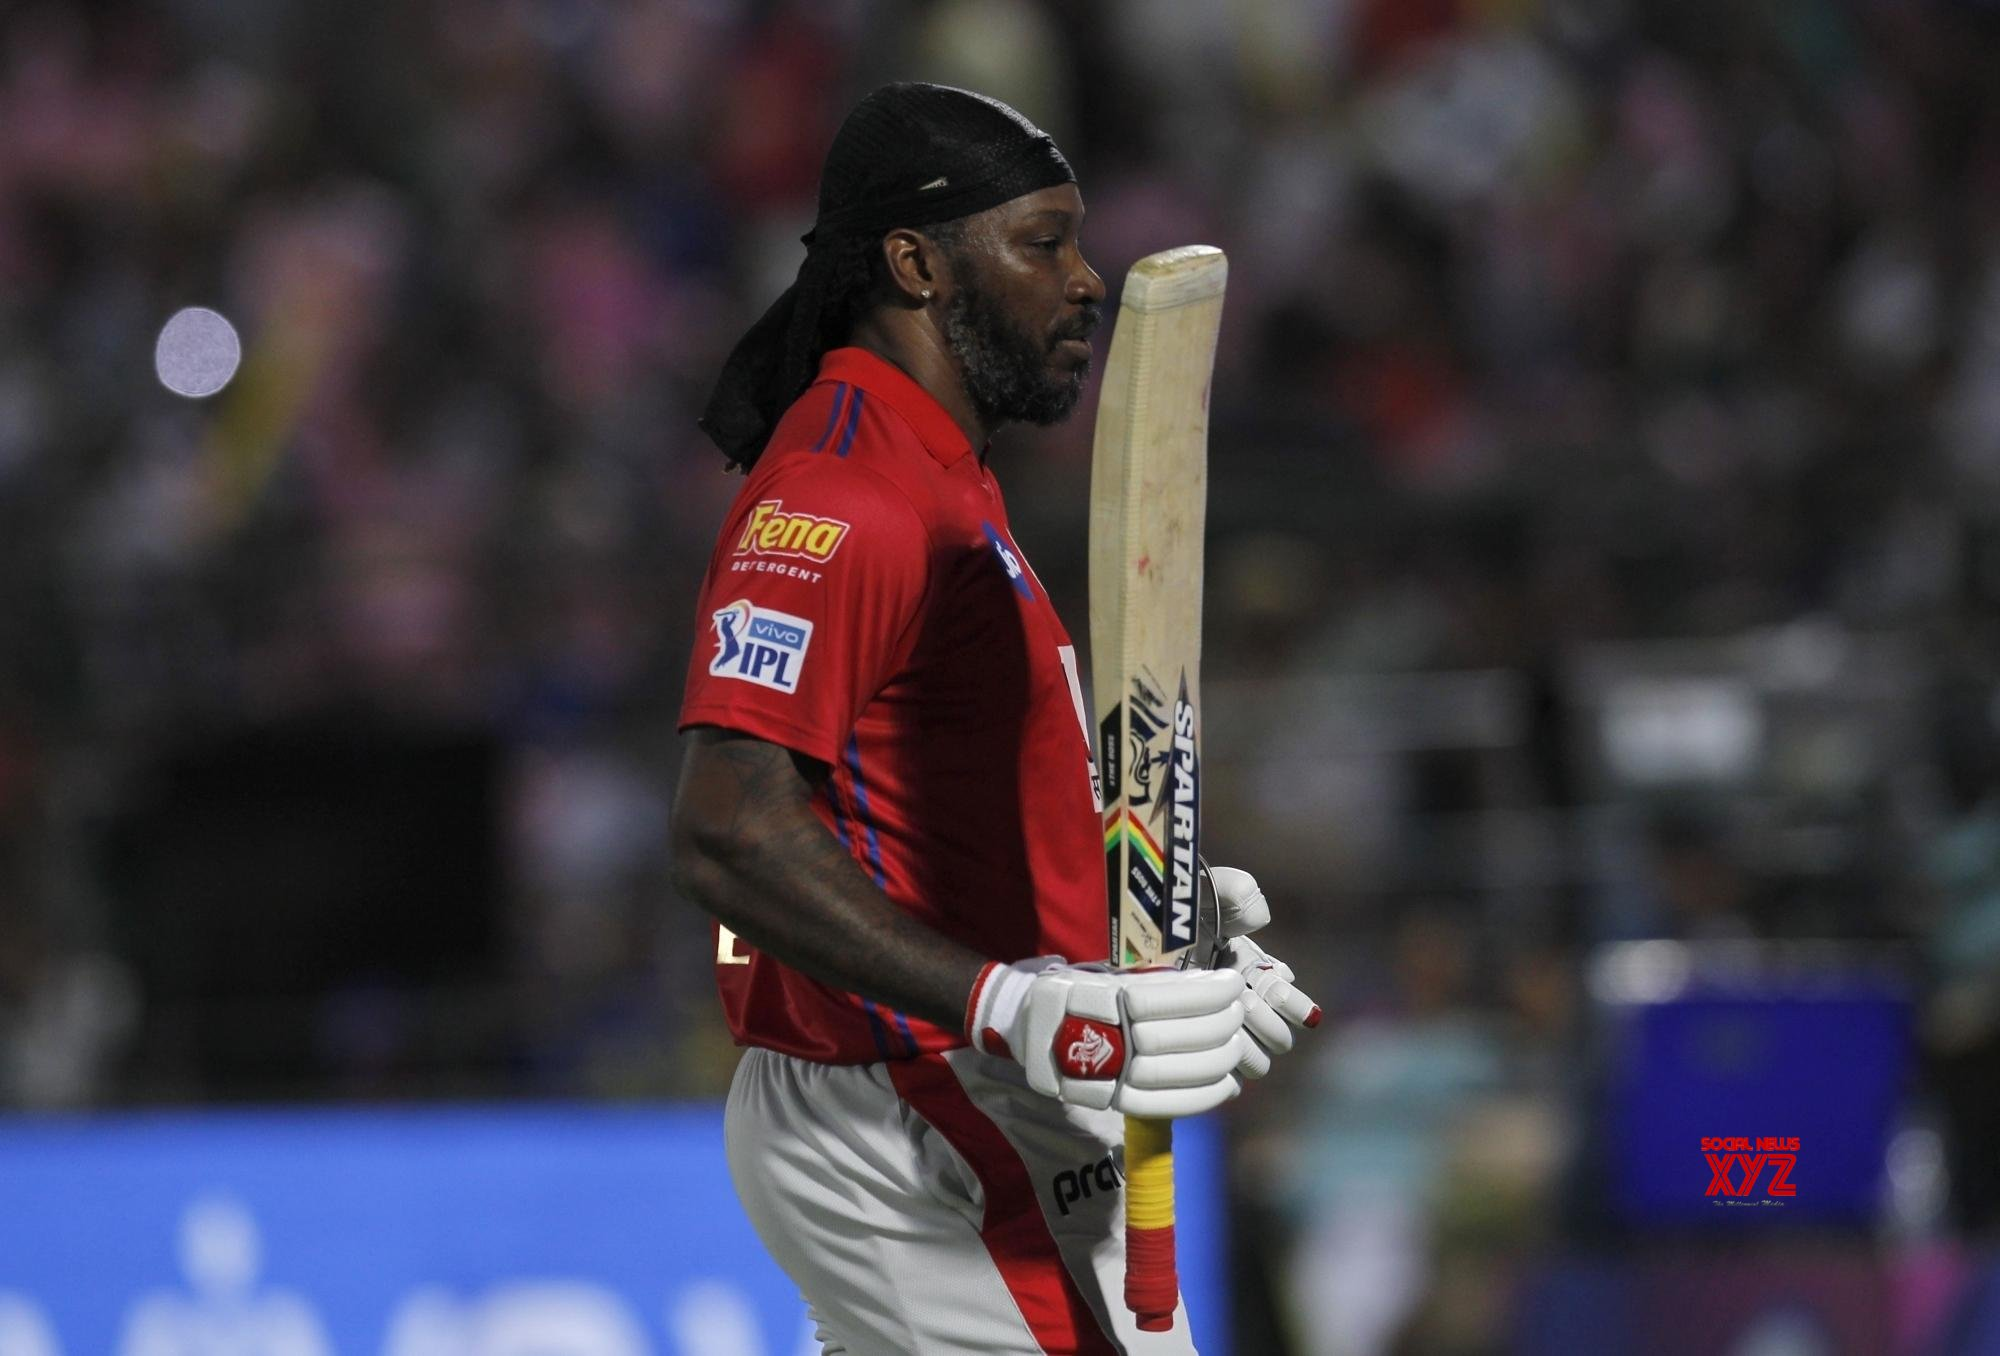 KXIP want to win the IPL for the Universe Boss: Gayle - Social News XYZ